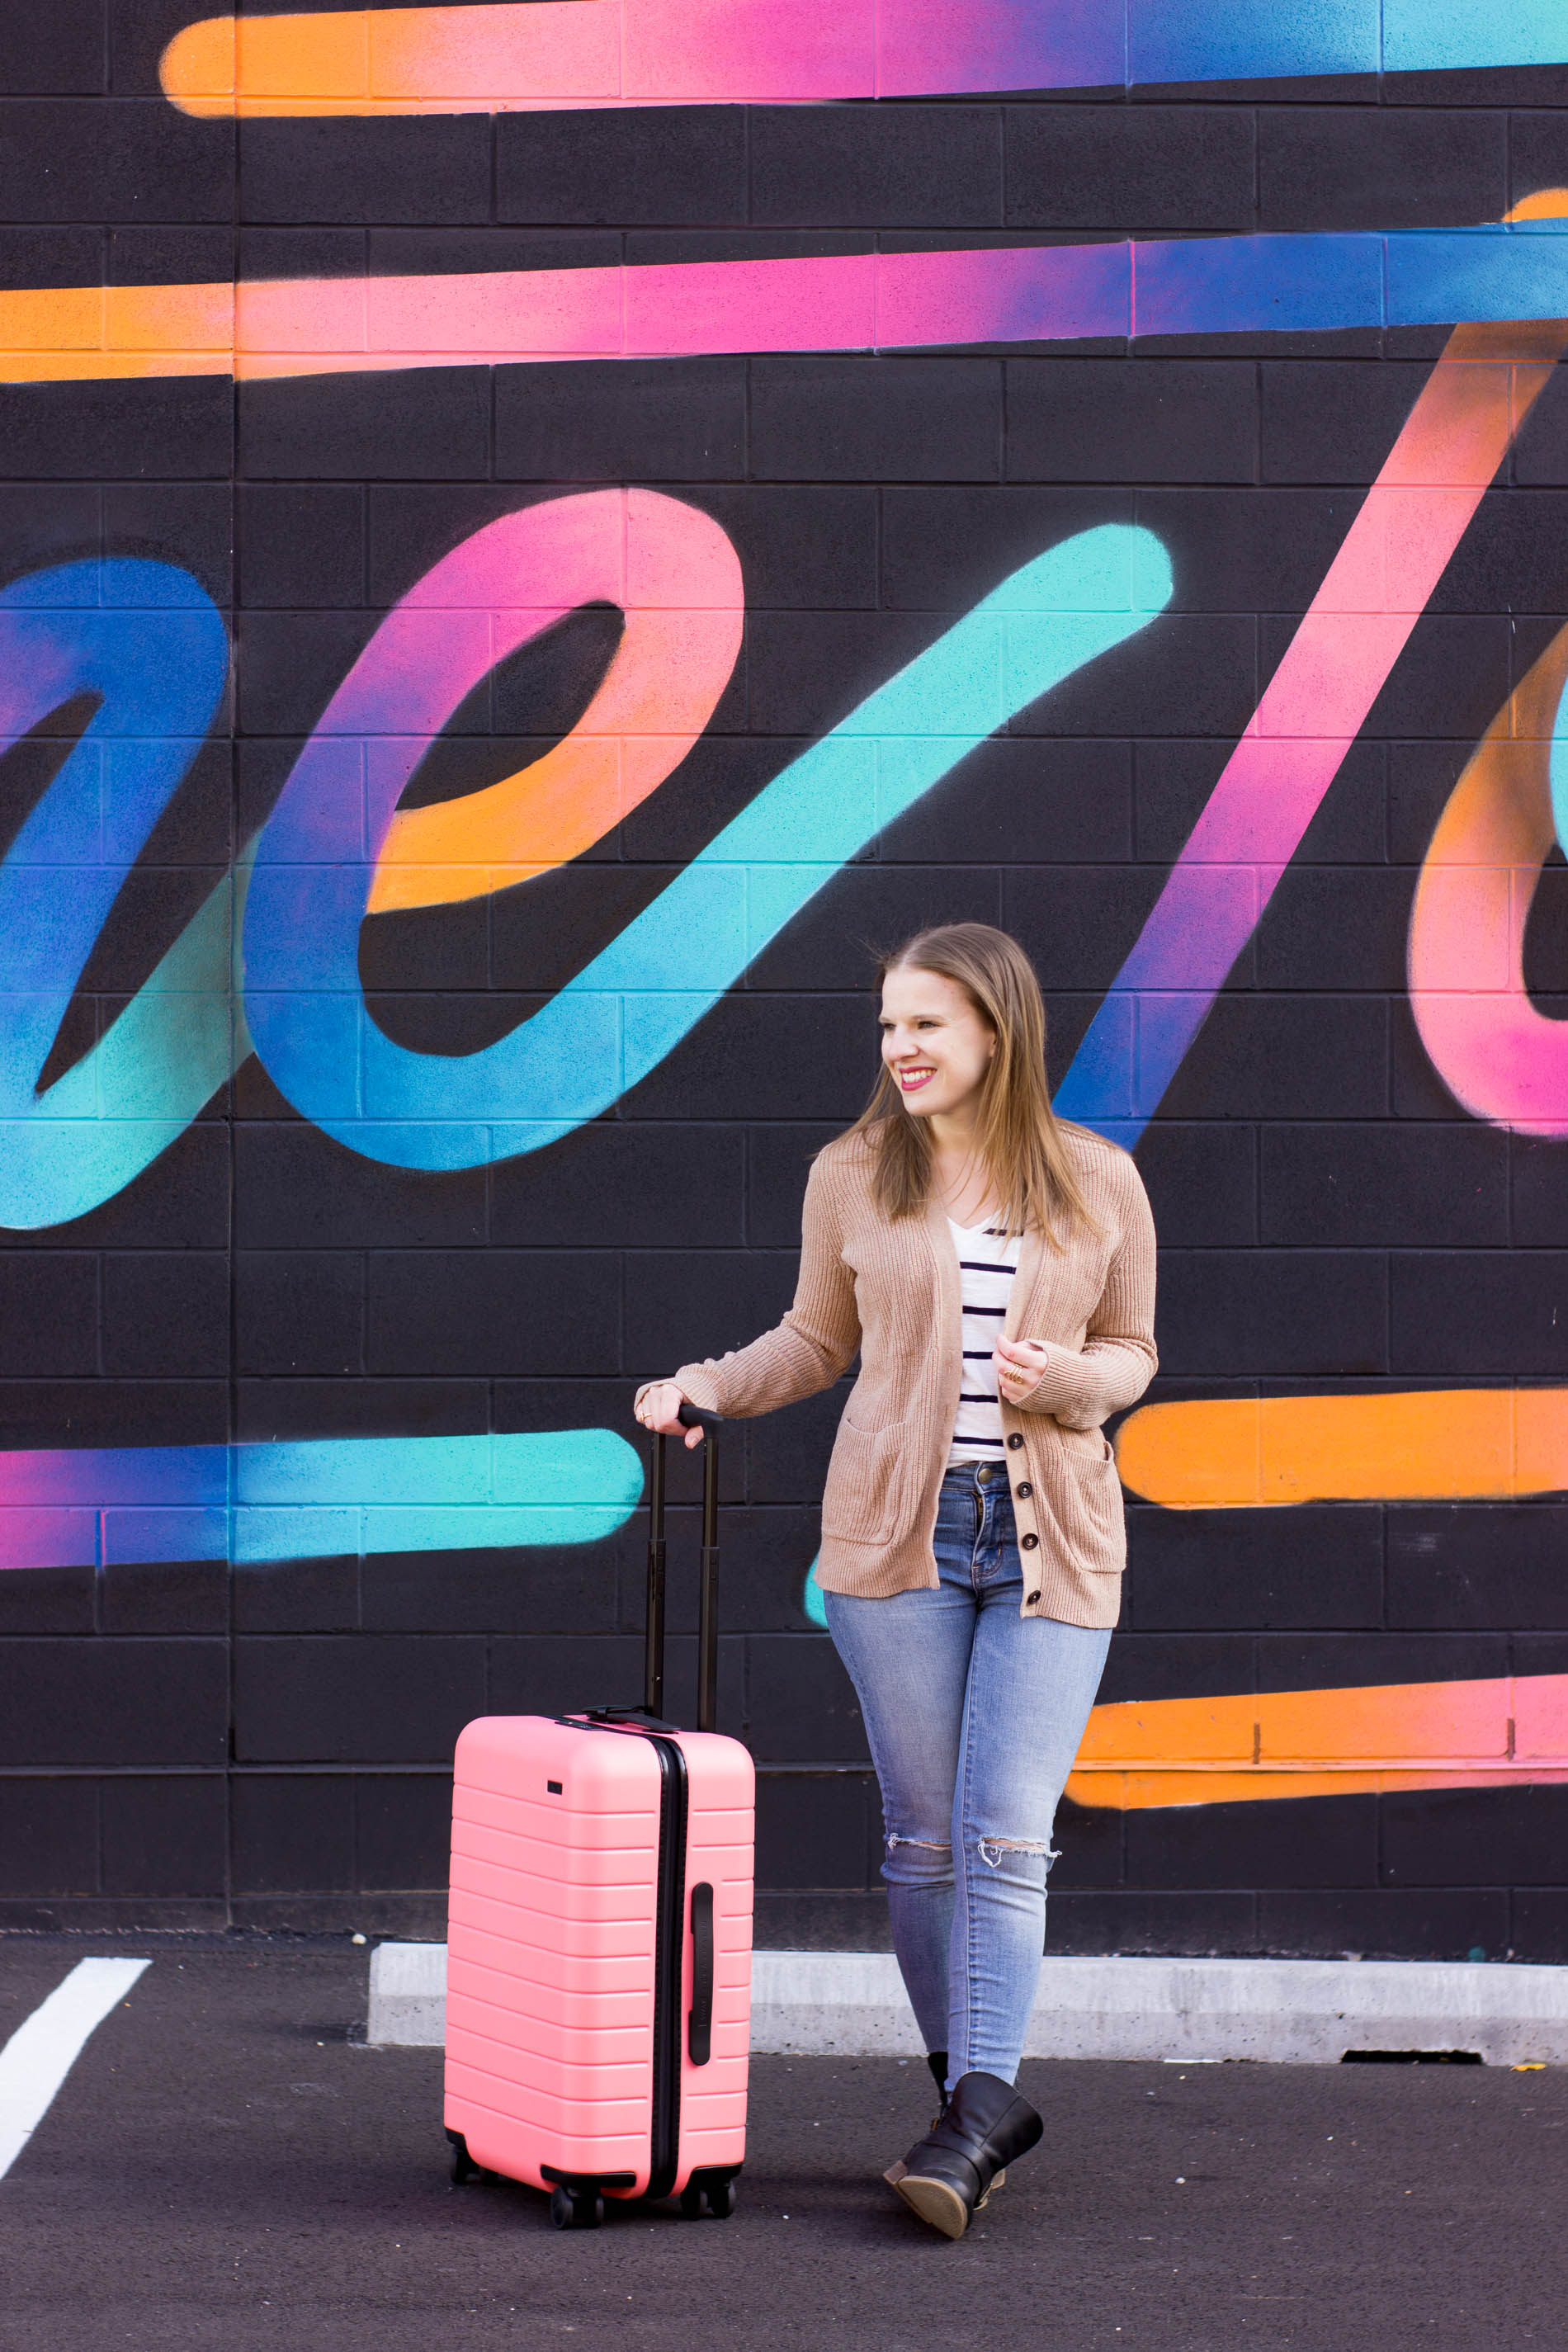 The Perfect Travel Outfit | Something Good, @danaerinw , women, fashion, clothing, style, women's fashion, jeggings, american eagle outfitters, jeans, denim, ripped jeans, boyfriend cardigan, striped shirt, coral suitcase